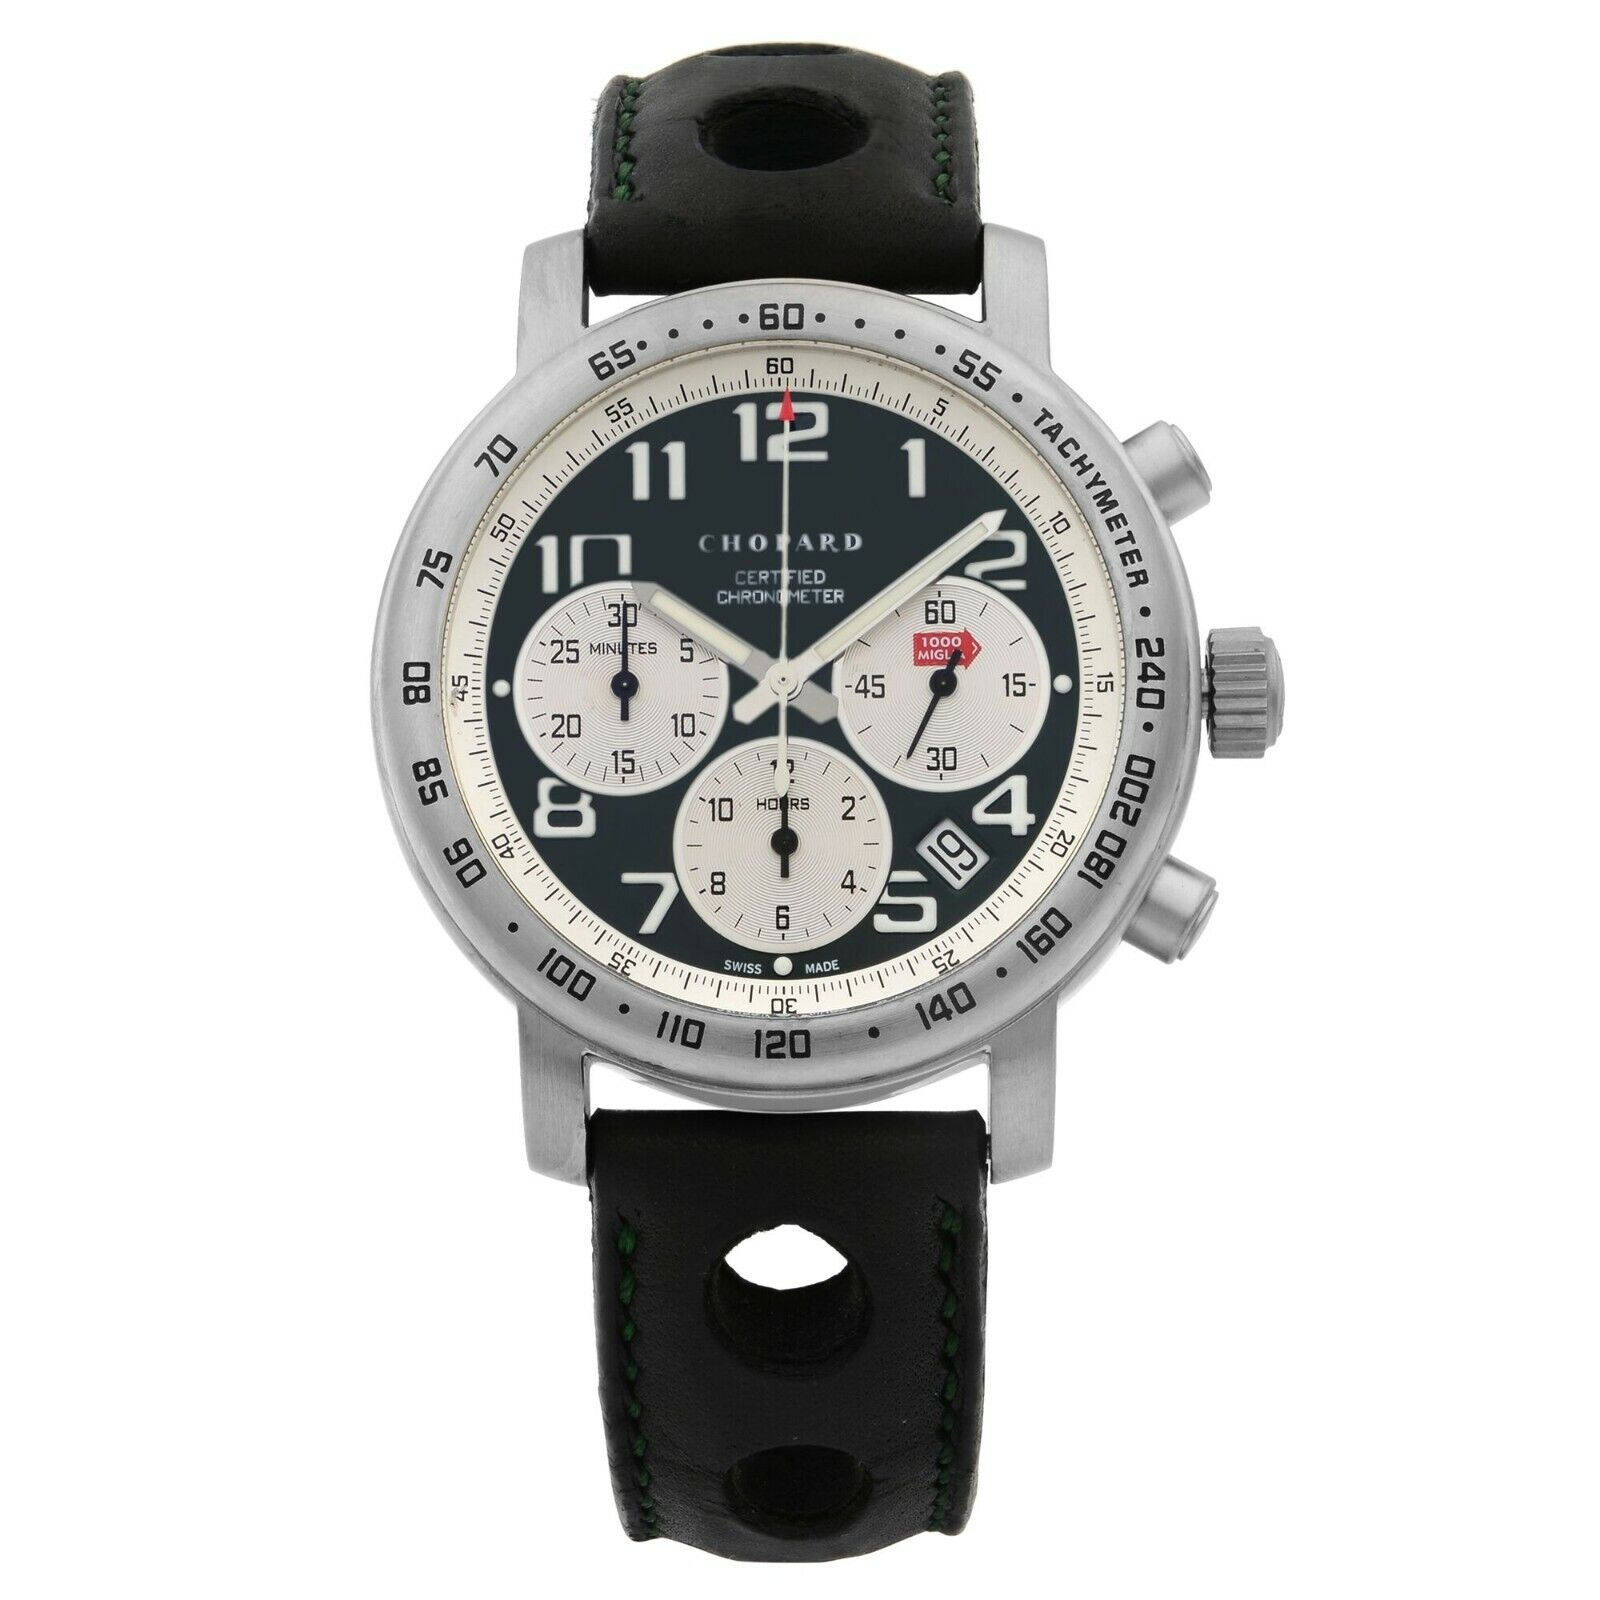 Chopard Mile Miglia Titanium Automatic Men's Watch 16/8915-102 MSRP $4880 - watch picture 1